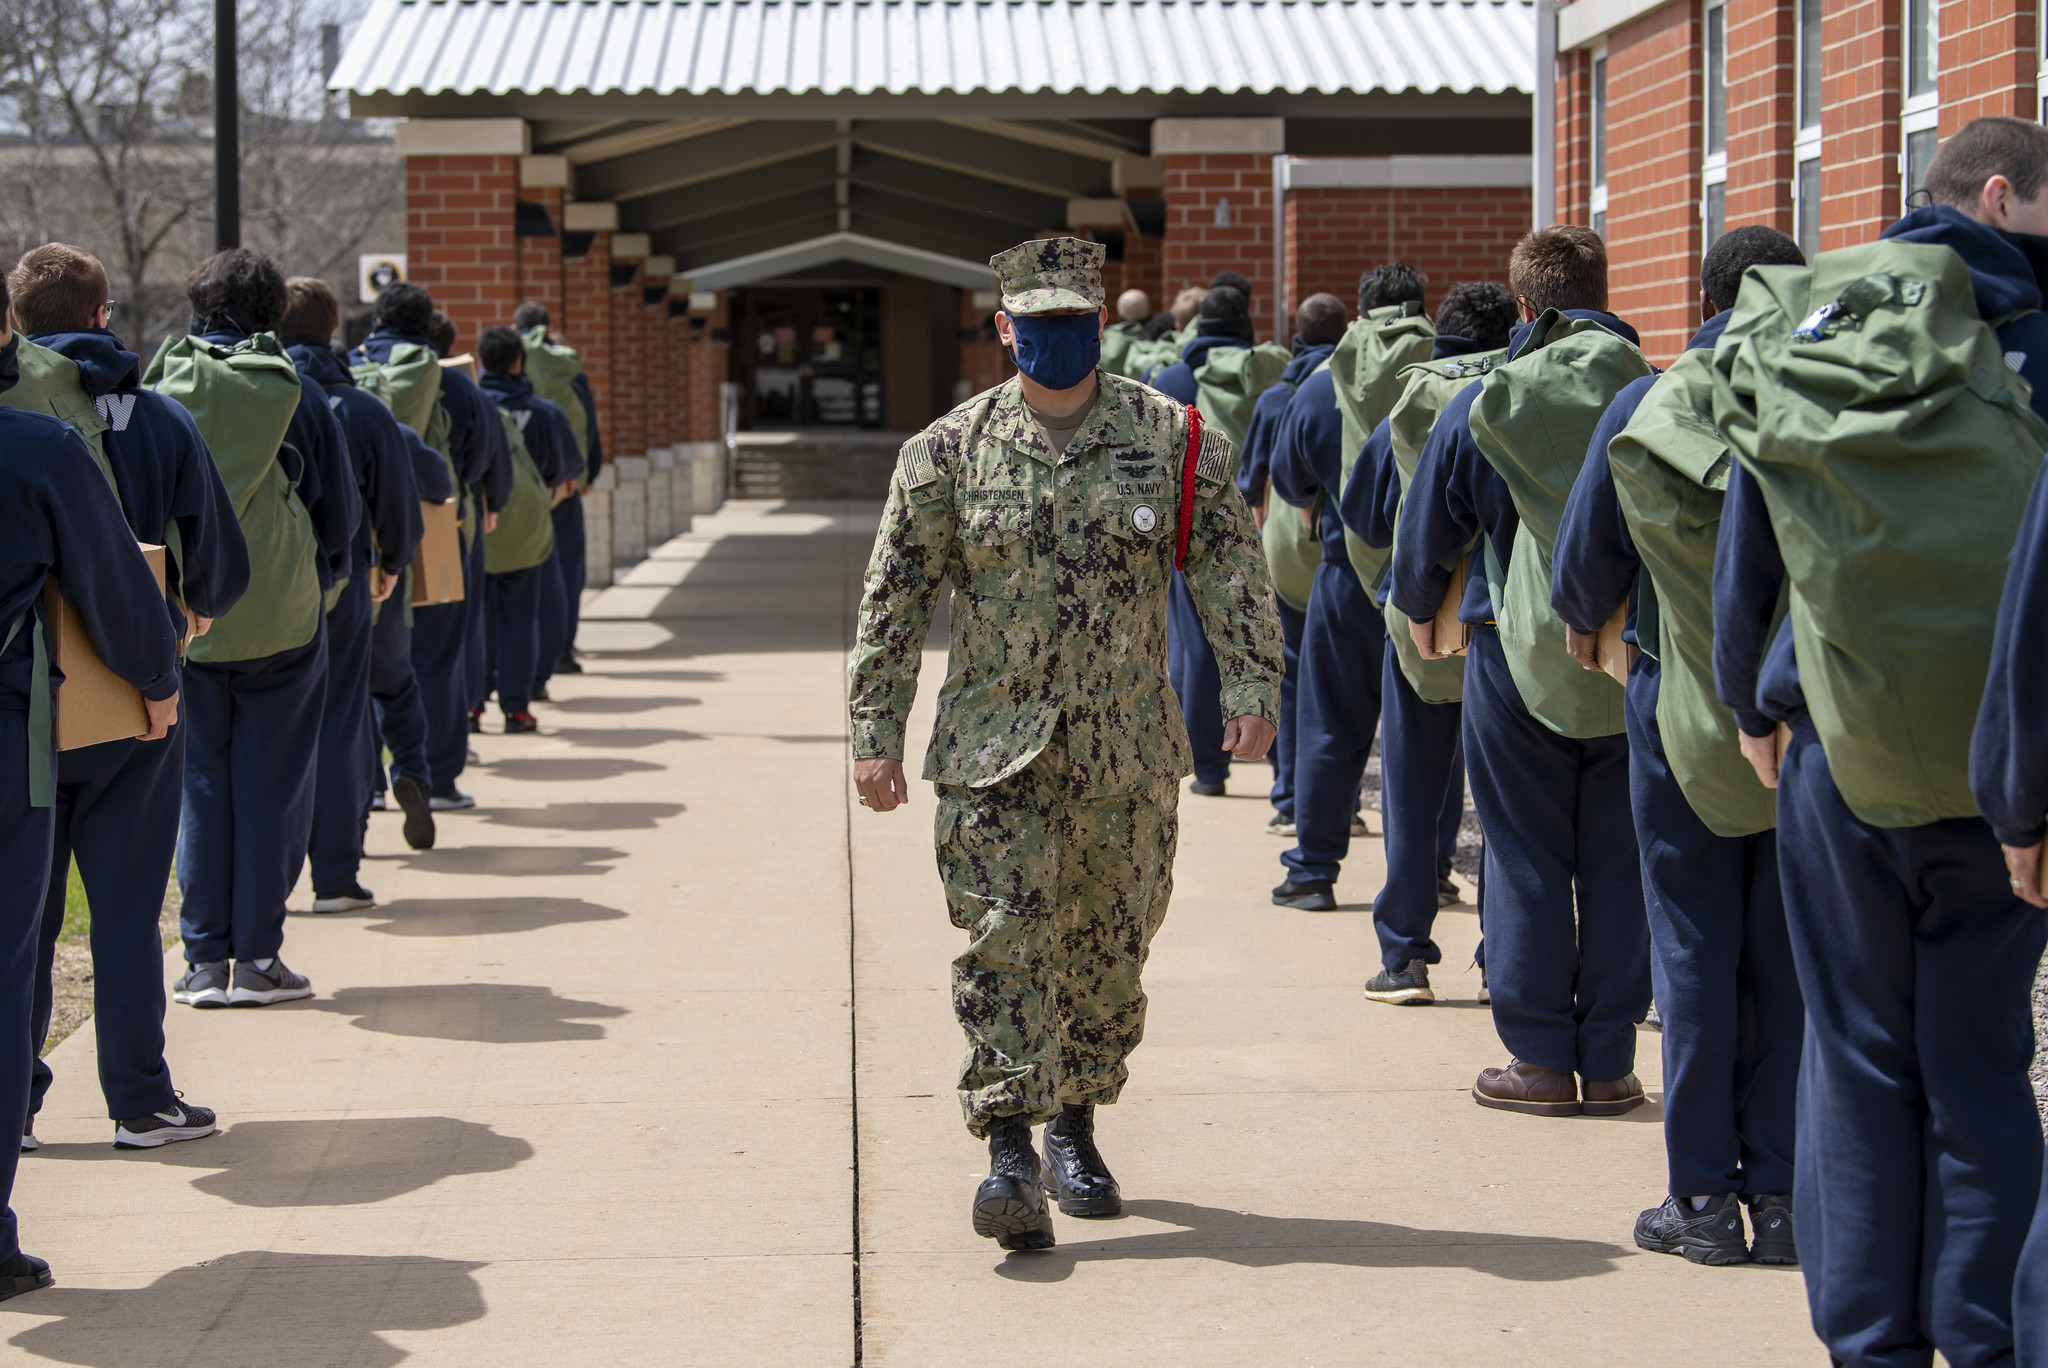 Chief Interior Communications Electrician Joseph Christensen instructs recruits as they arrive at Recruit Training Command at Great Lakes, Ill., on May 4, 2020, following a 14-day restriction-of-movement period at an off-site facility. (MC1 Spencer Fling/Navy)